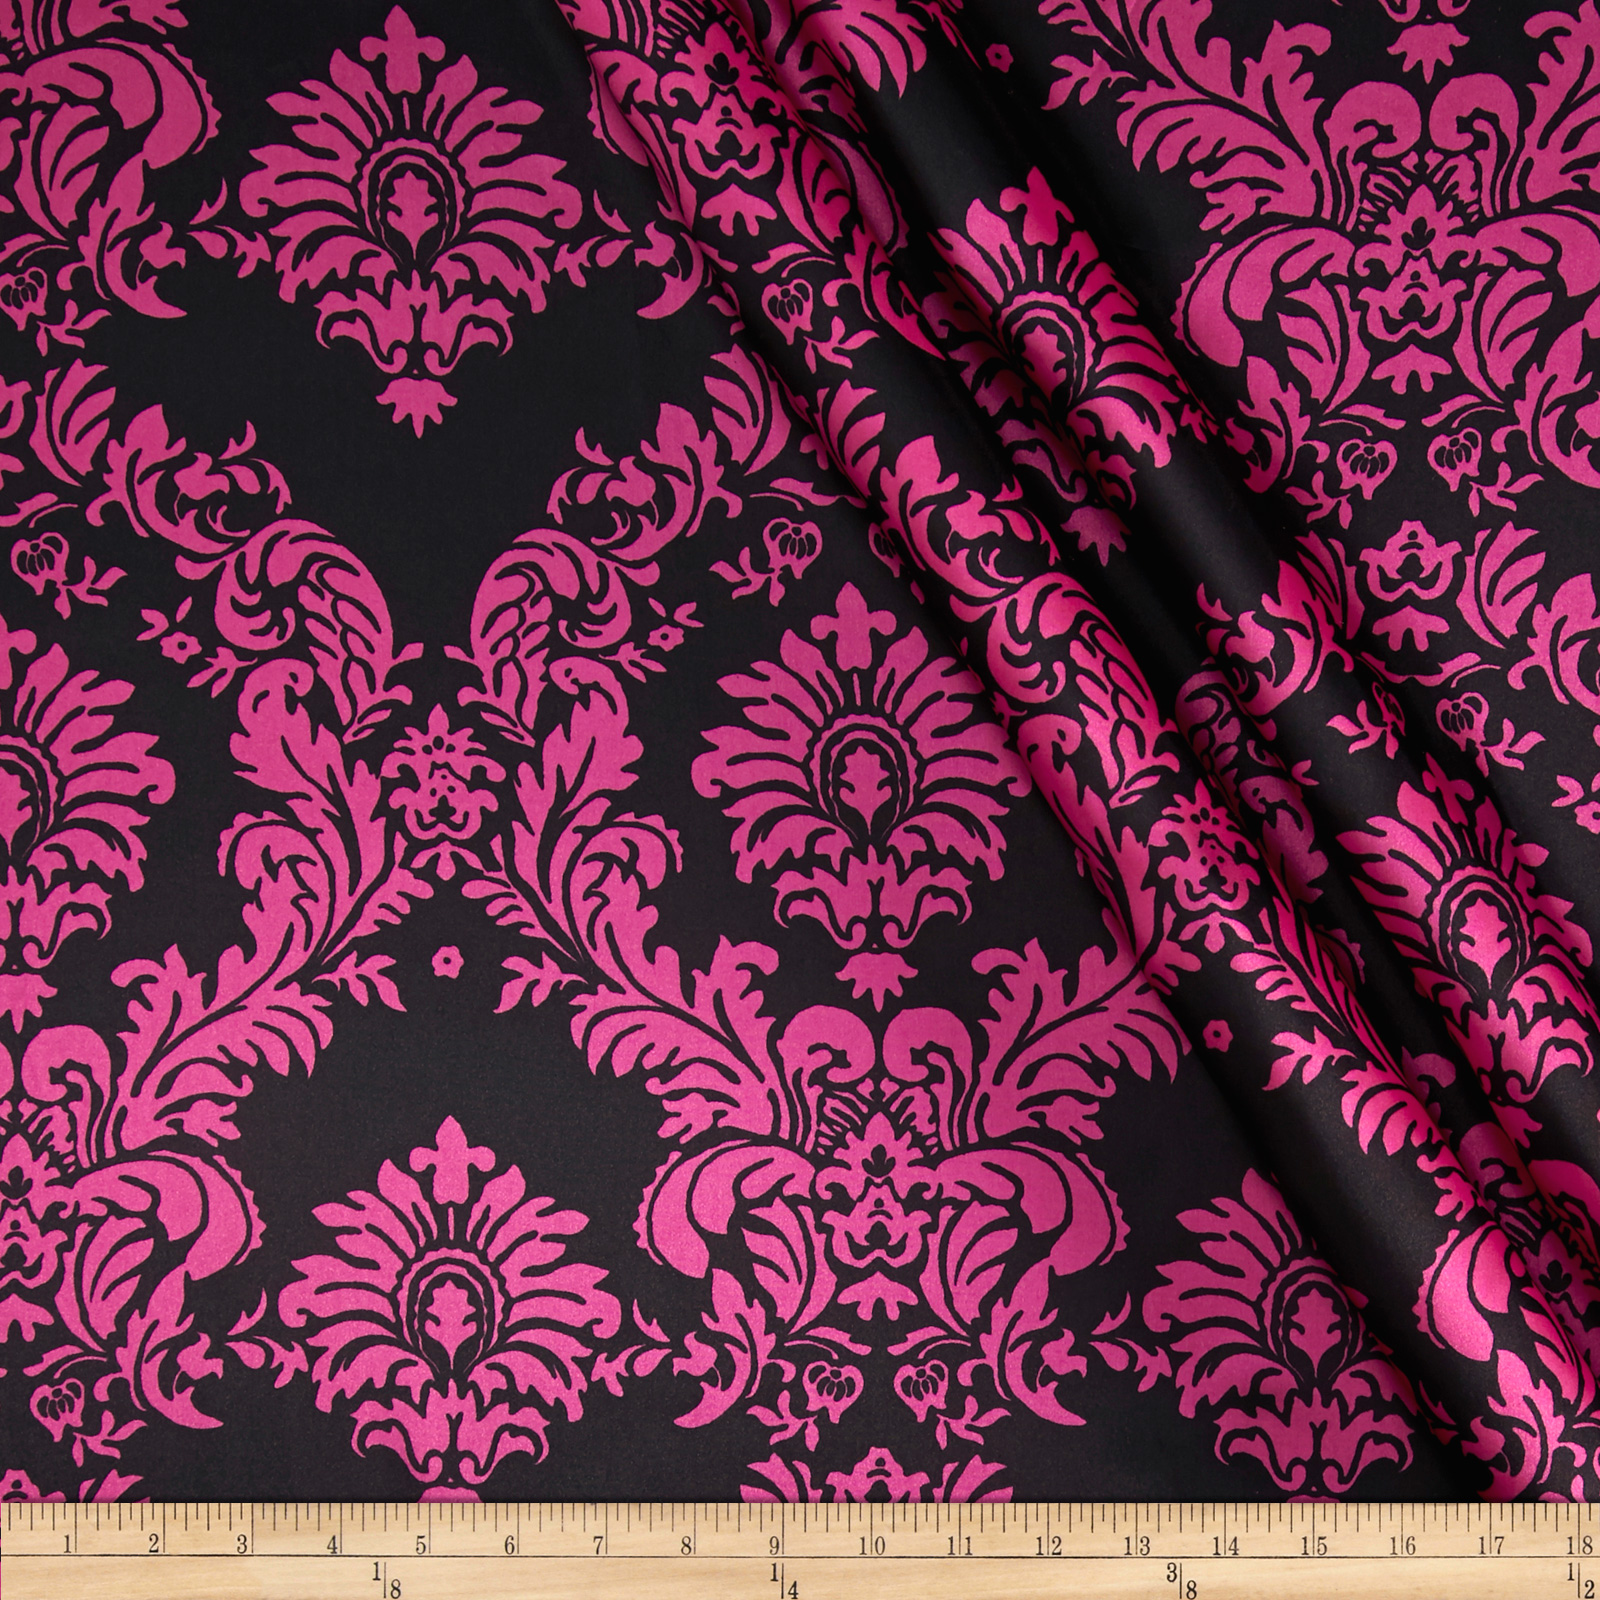 Charmeuse Satin Damask Black/Fuschia Fabric